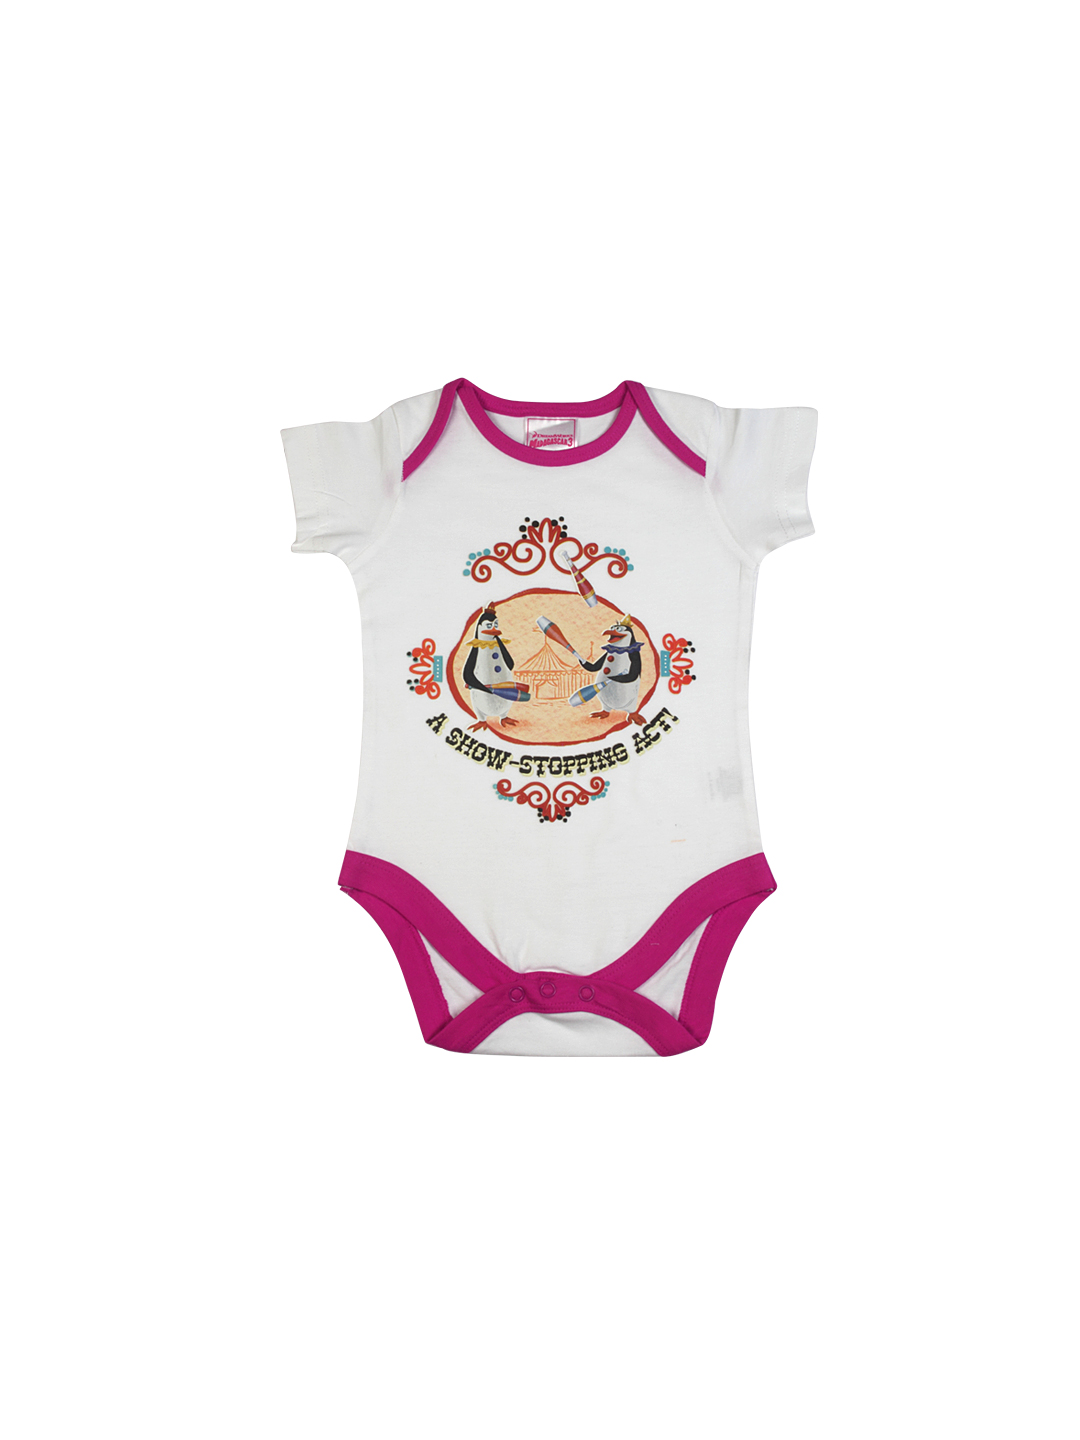 Madagascar3 Infant Girls White Snapsuit Romper